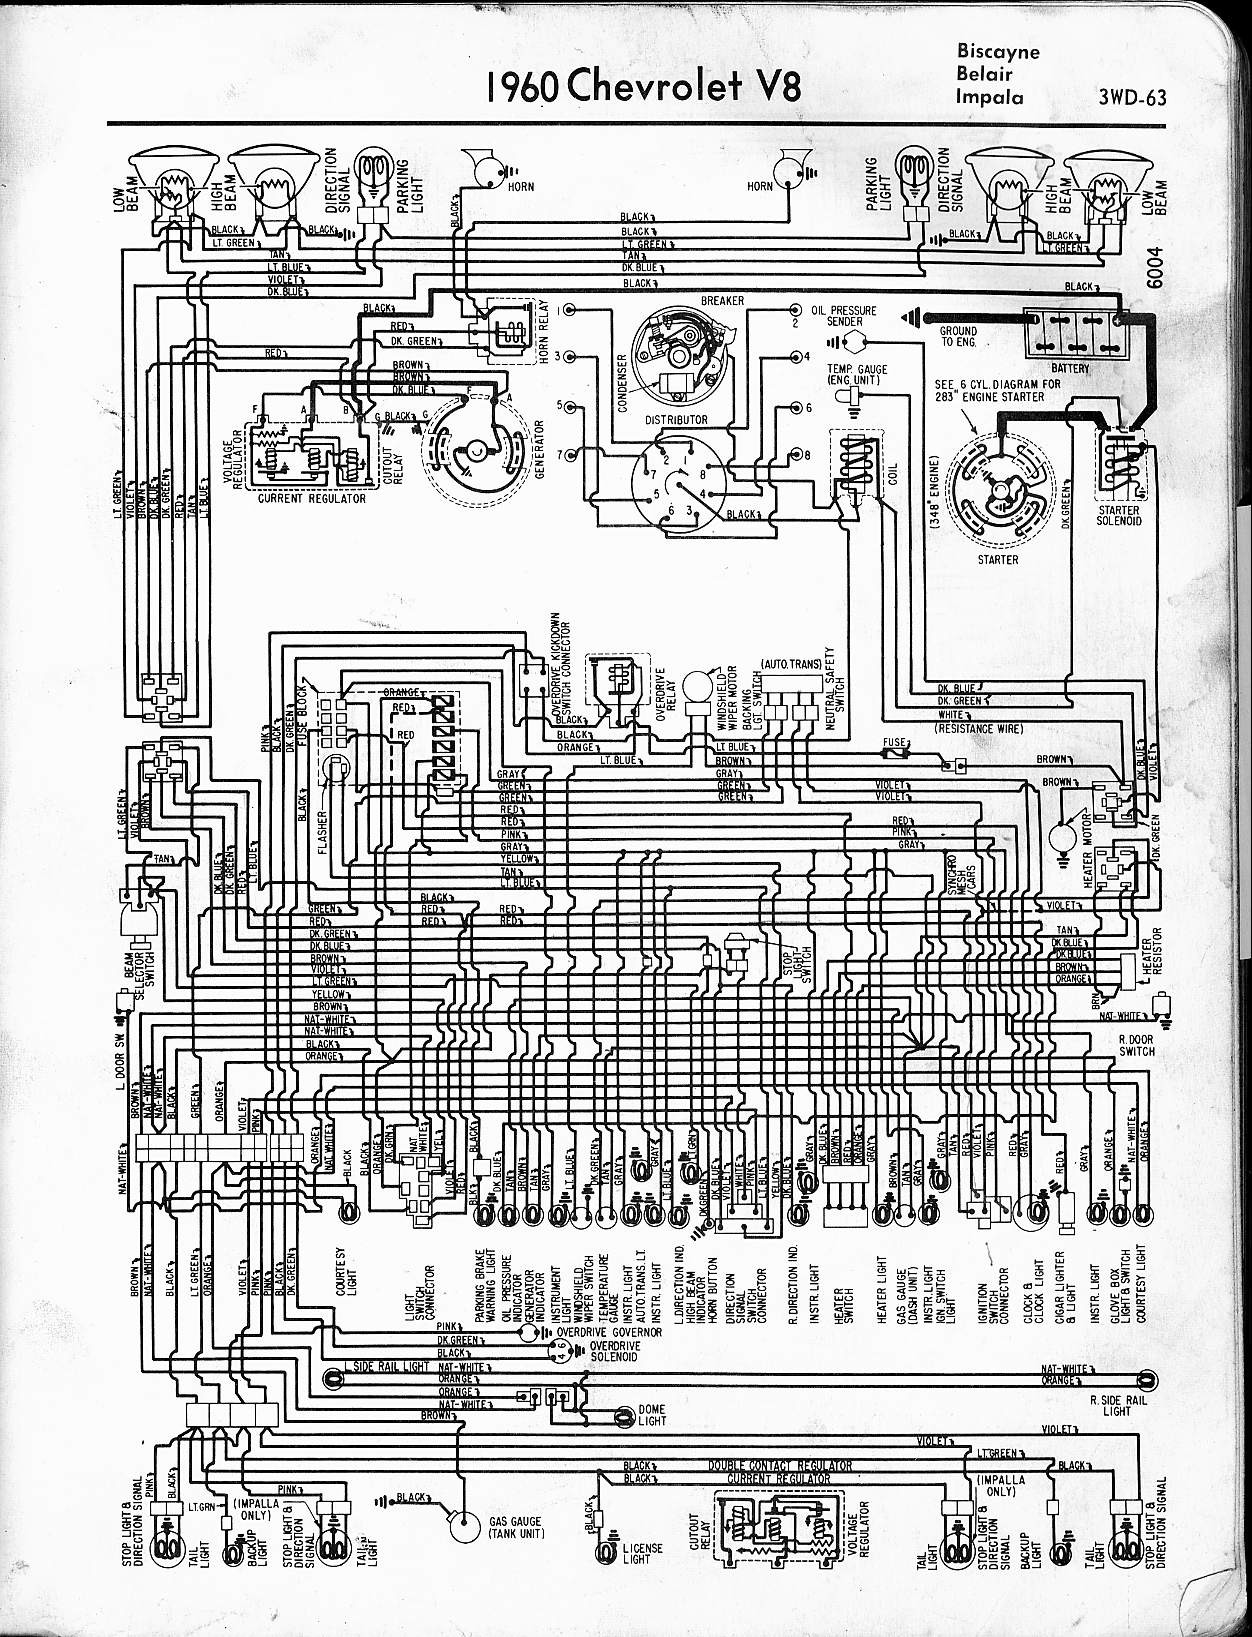 1964 Chevy Impala Hvac Wiring Diagram Electrical Schematics 64 Buick Skylark 2005 Engine Harness Diy Enthusiasts 1968 Camaro